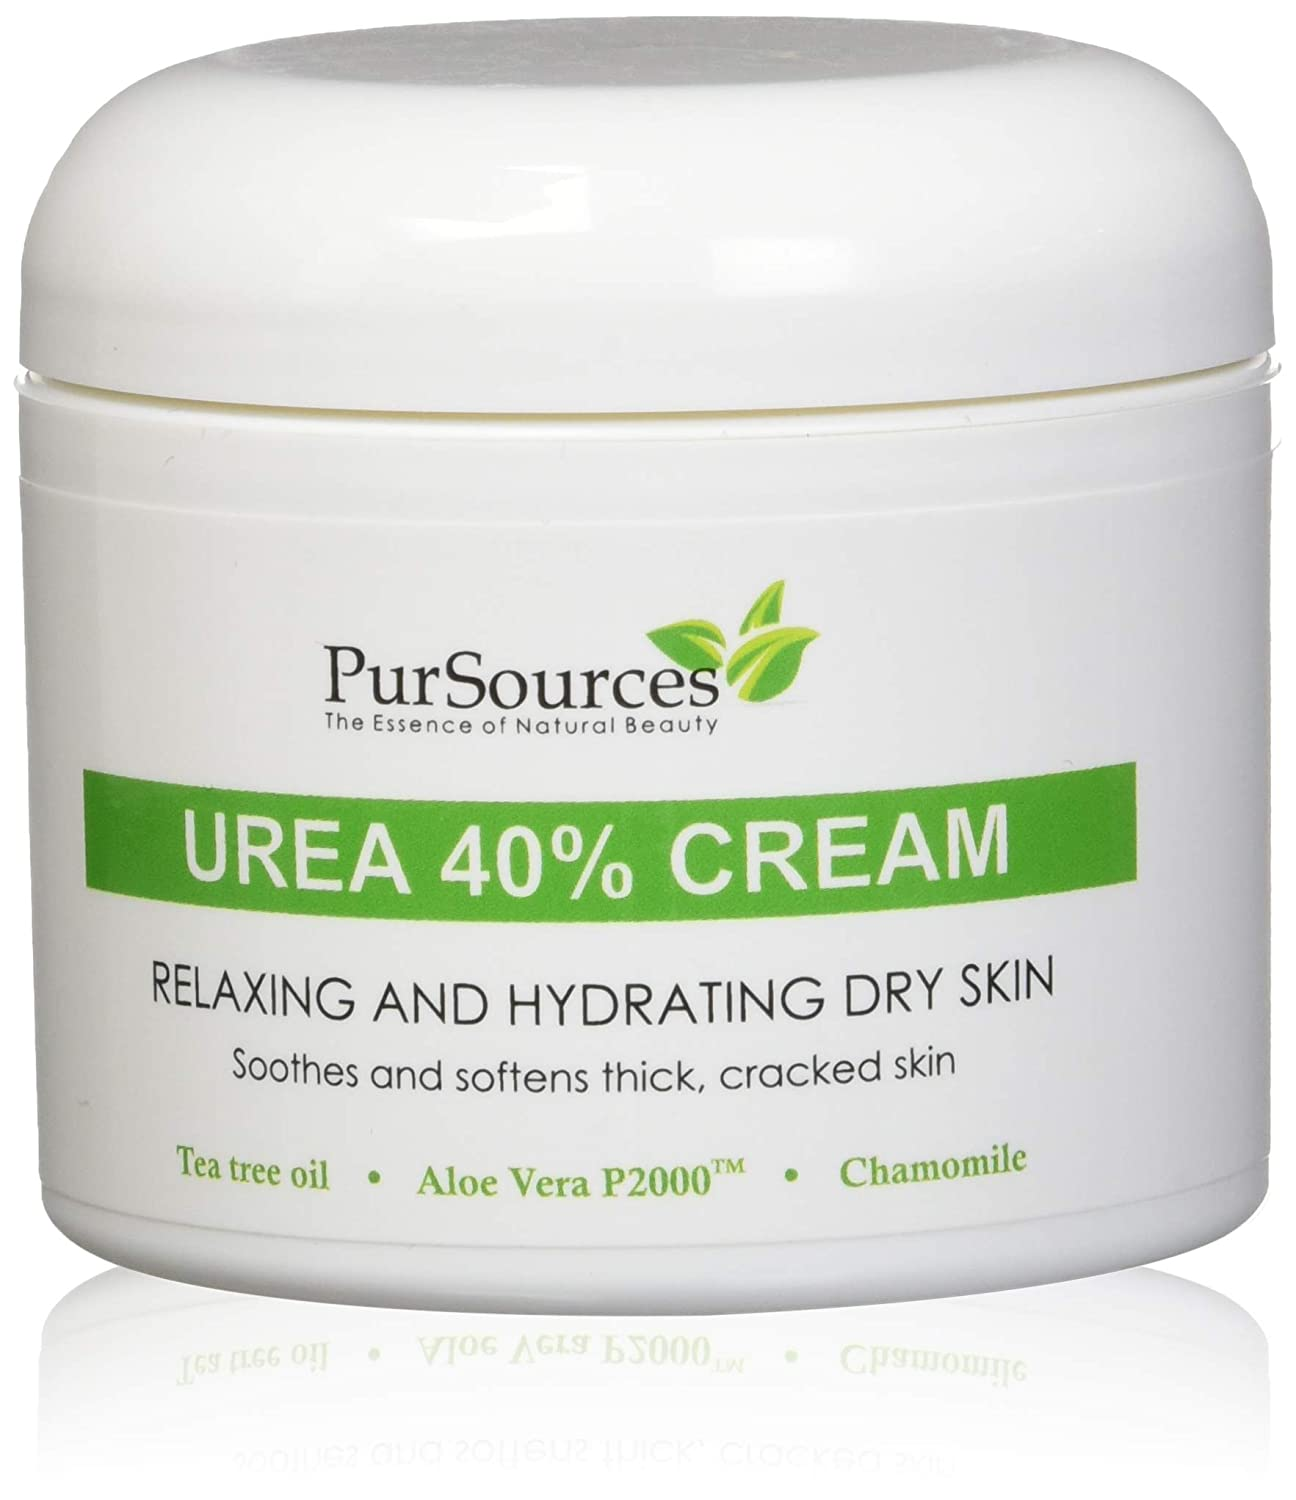 PurSources Urea 40% Healing Cream 4 oz - Best Callus Remover + Free Pumice Stone - Moisturizes and Rehydrates Feet to a Healthy Appearance - Soothes and Softens Thick, Cracked, Rough Dead and Dry Skin